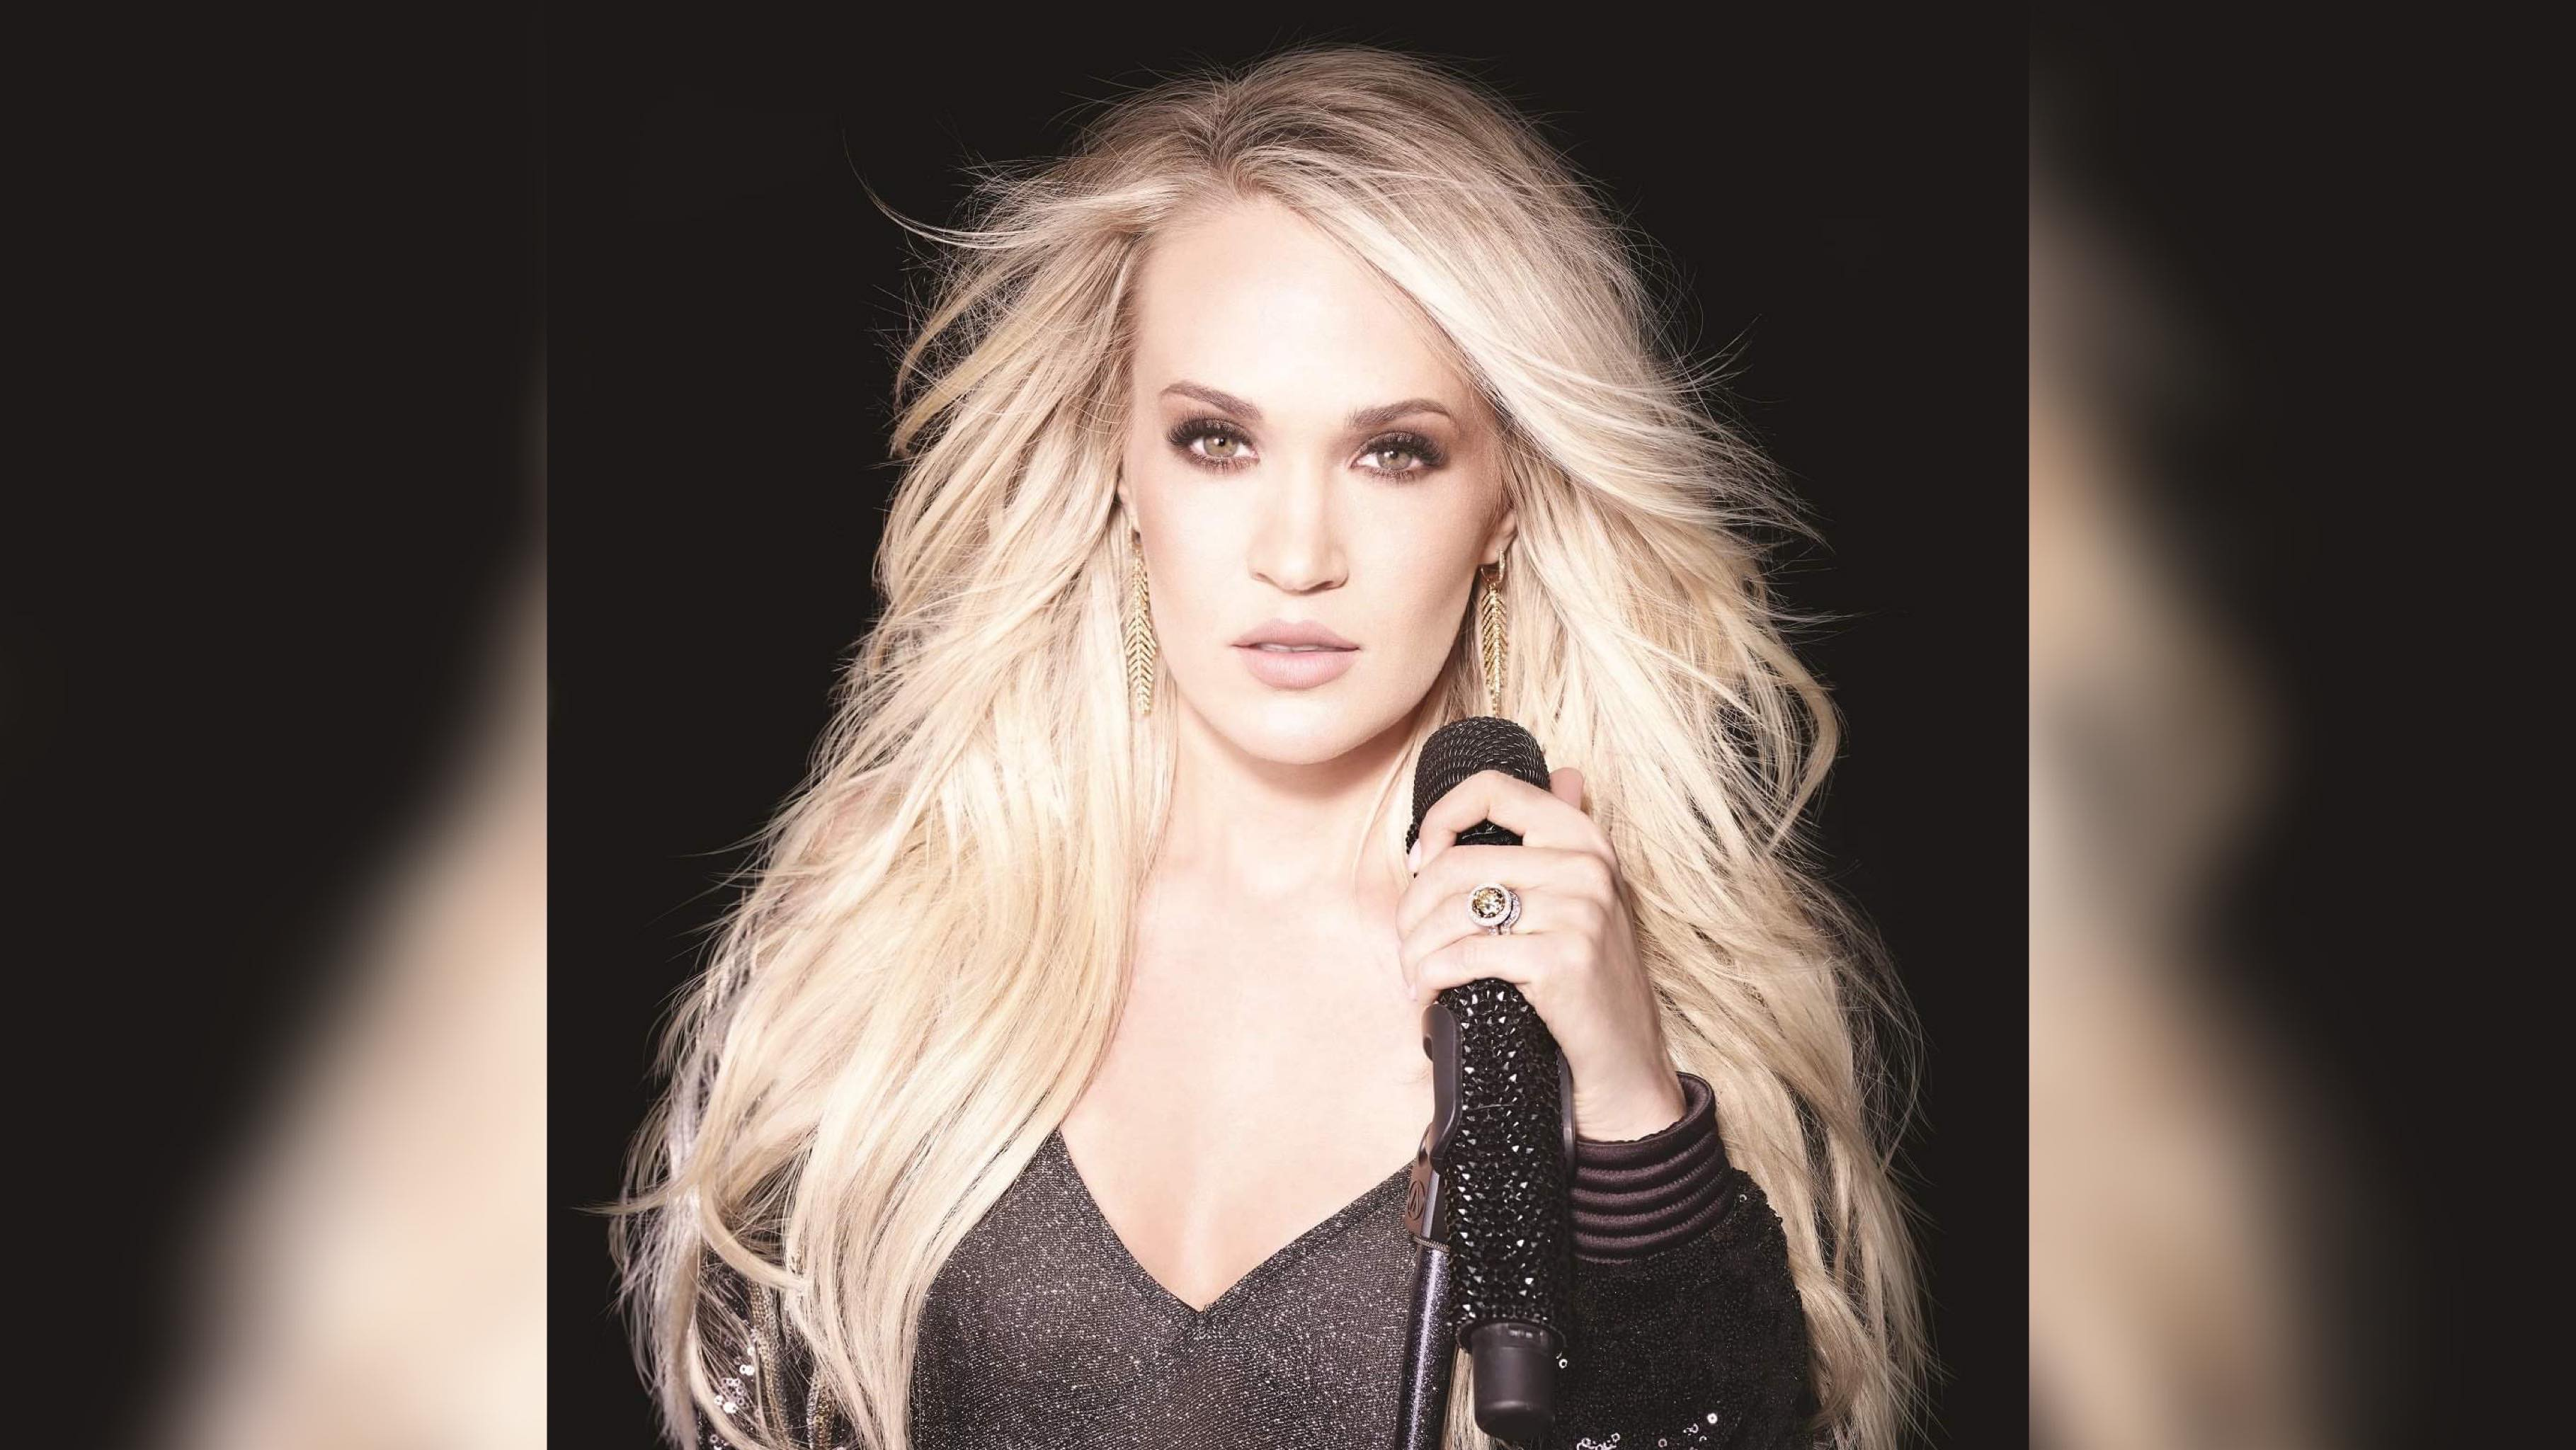 Carrie Underwood To Perform At The 2020 Washington State Fair